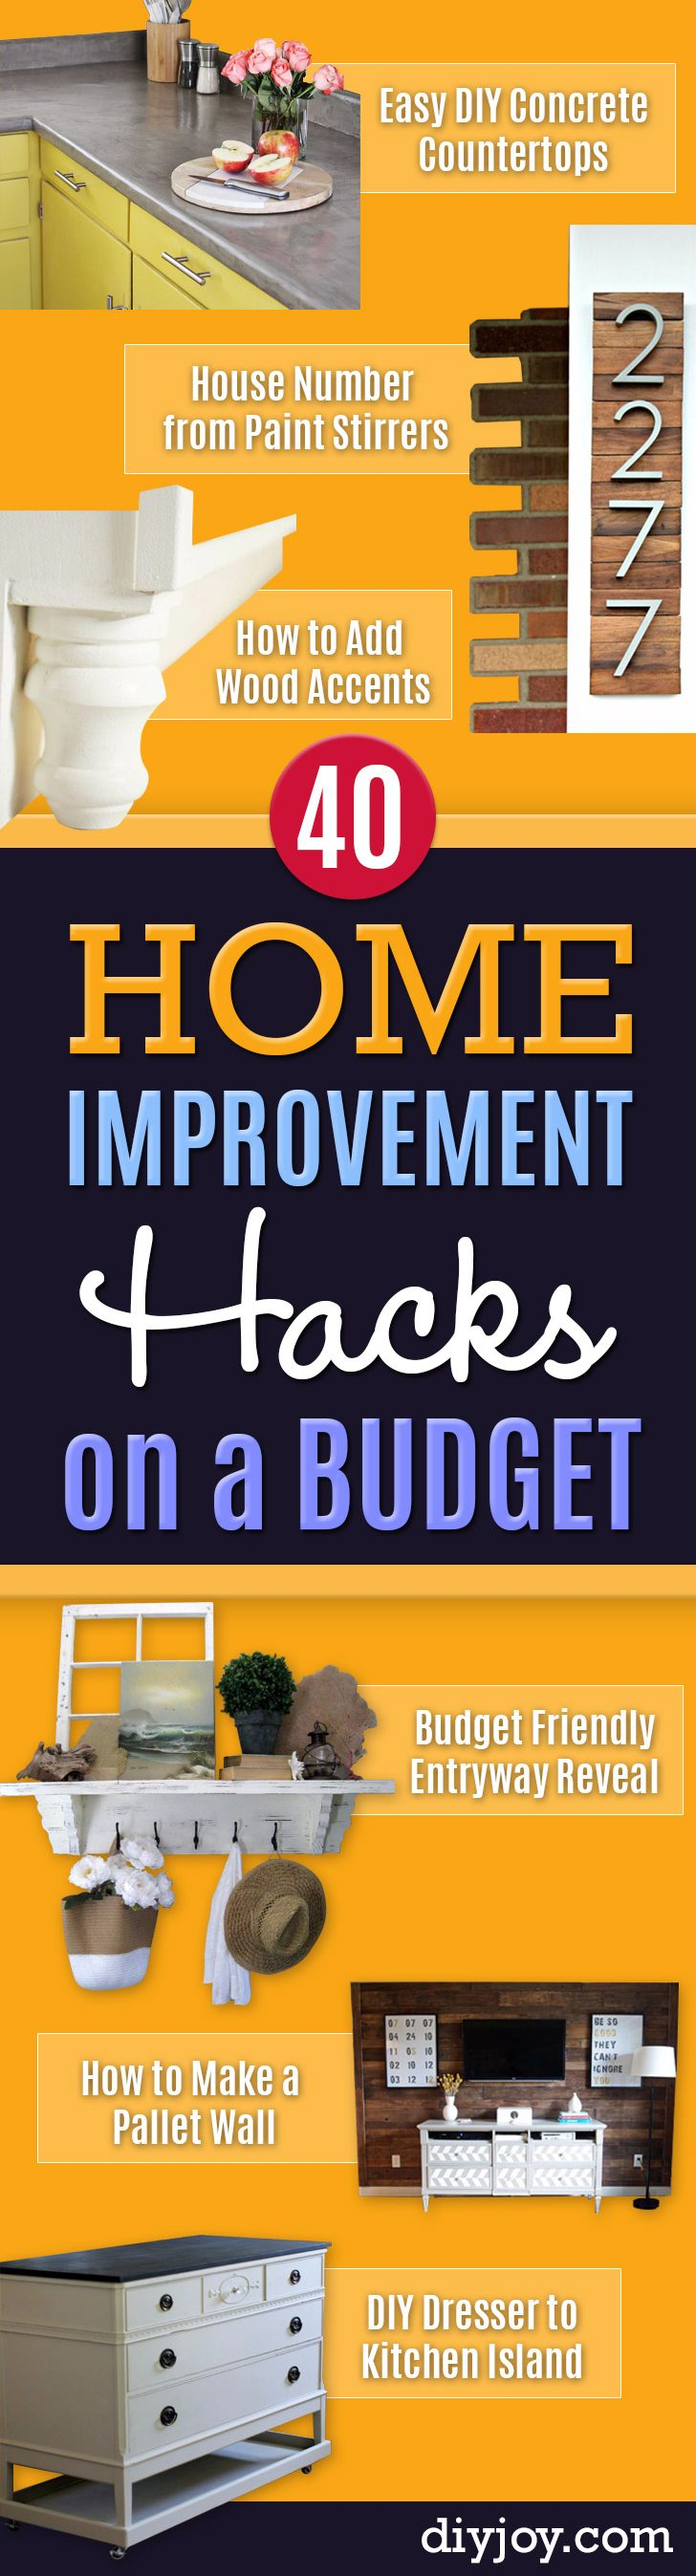 DIY Home Improvement On A Budget - Easy and Cheap Do It Yourself Tutorials for Updating and Renovating Your House Remodeling and Decorating Projects